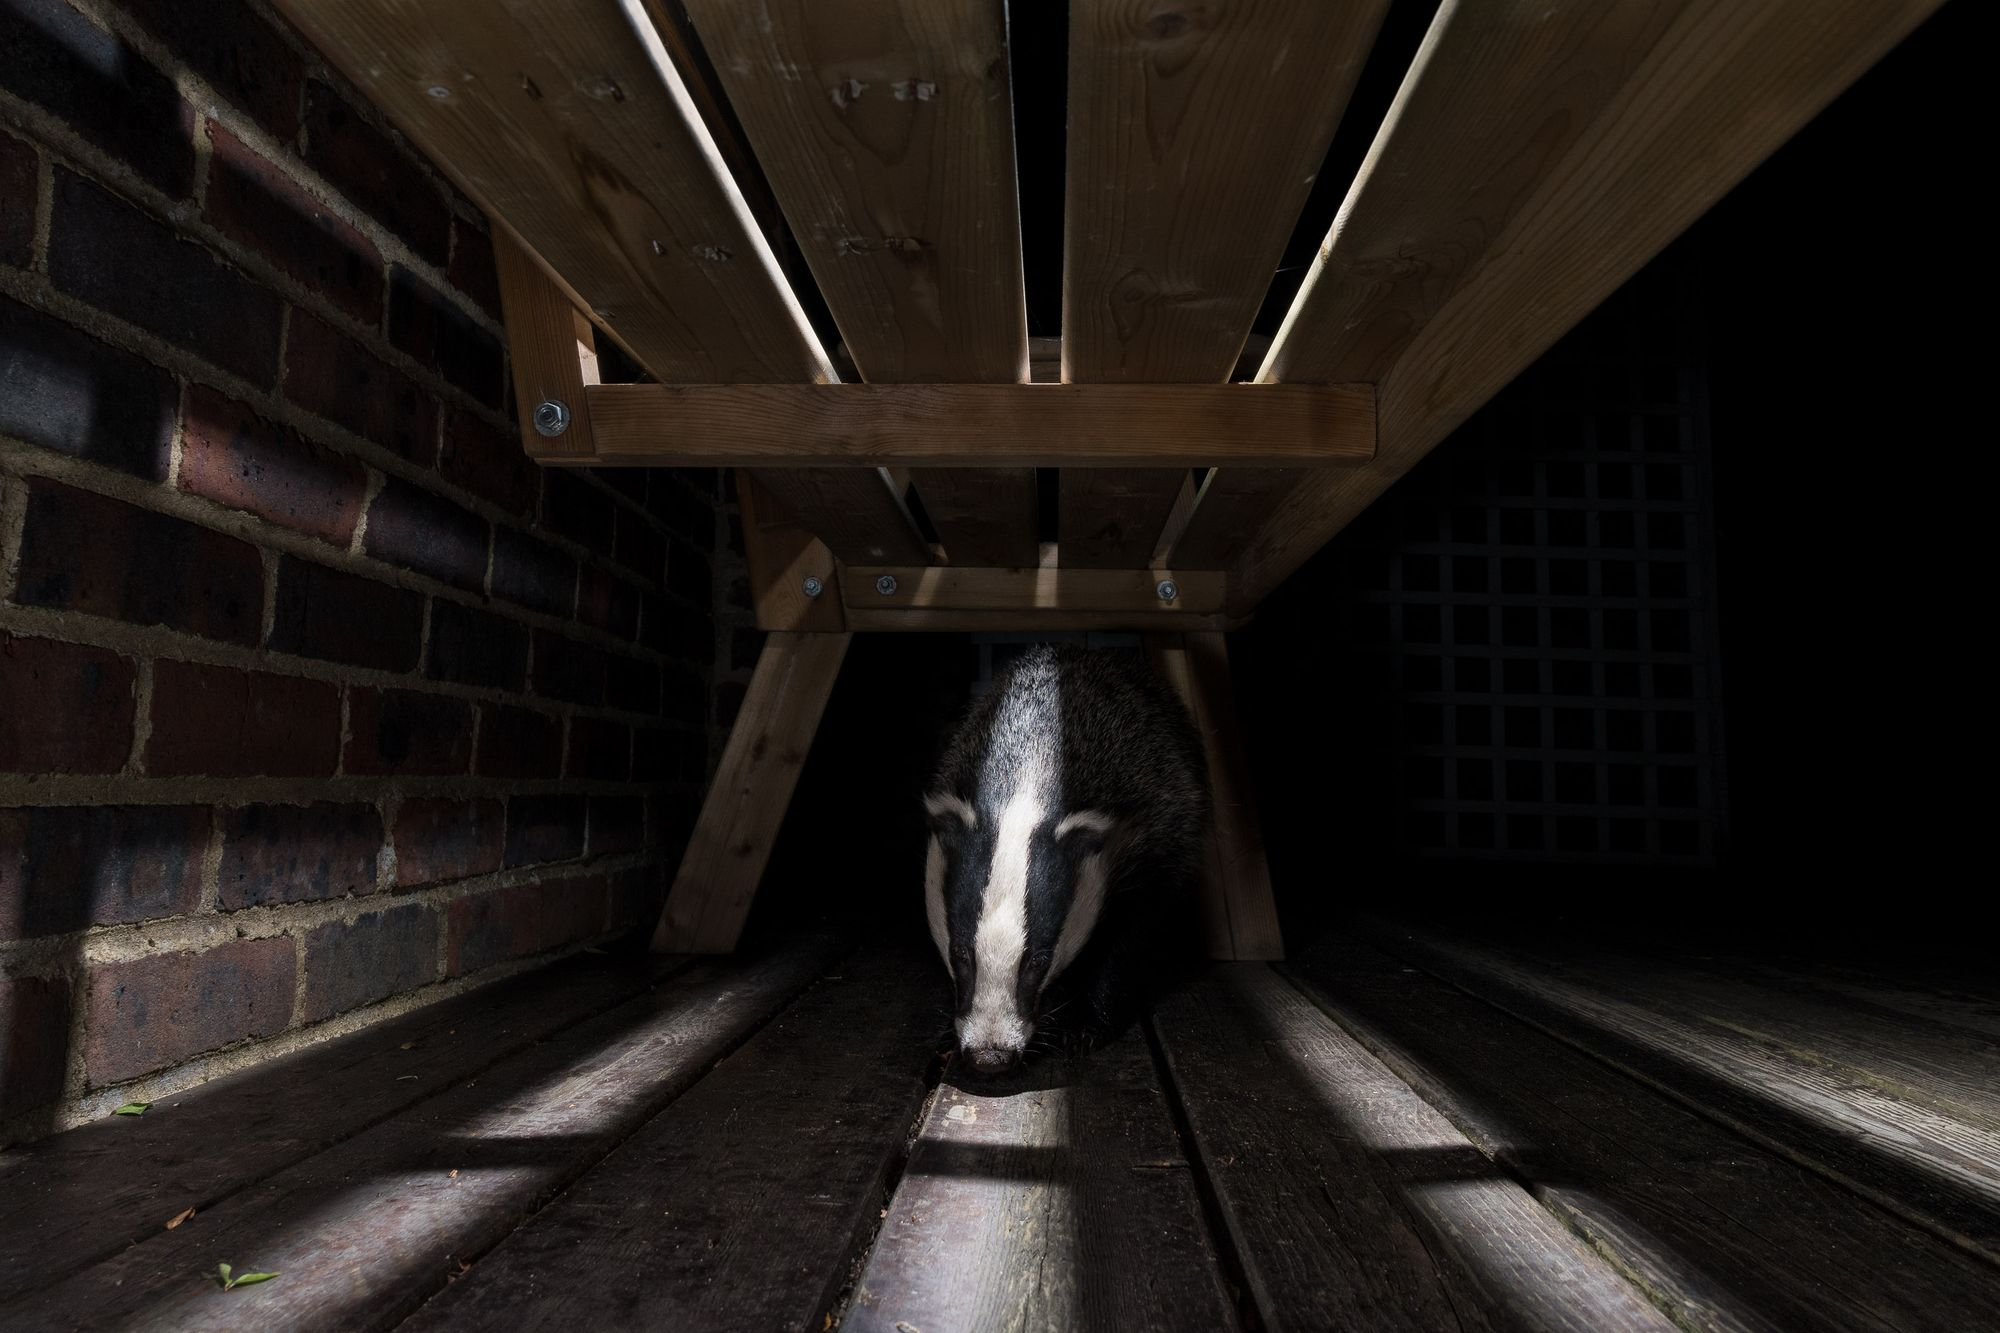 photographing badgers, urban wildlife photography